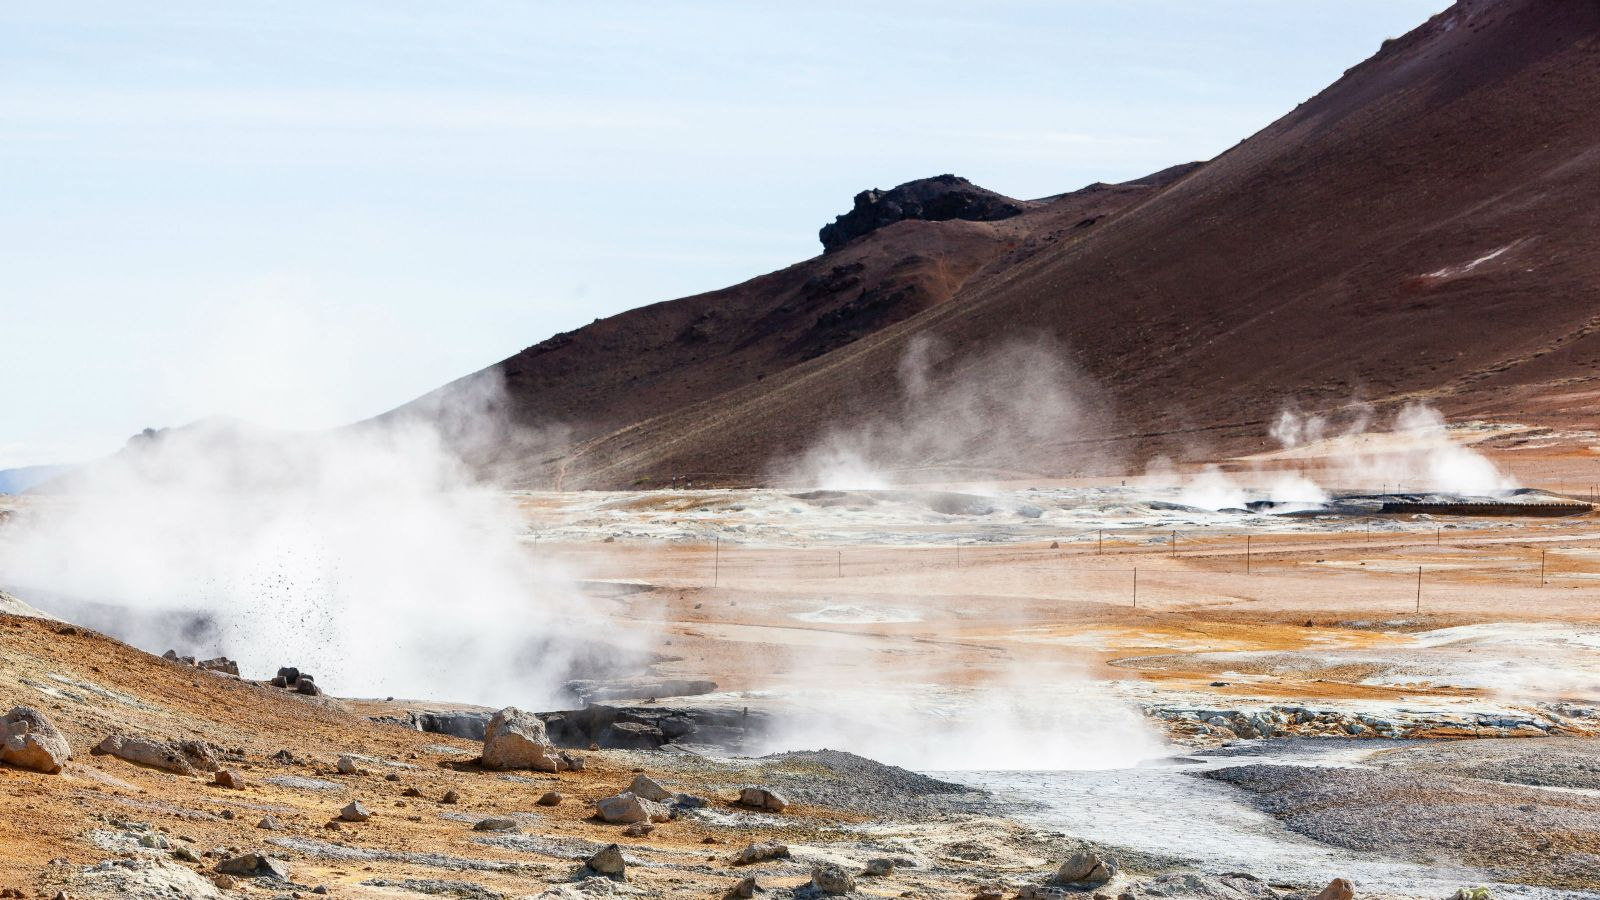 A landscape image, showing geothermal vents and bare, sandy hills